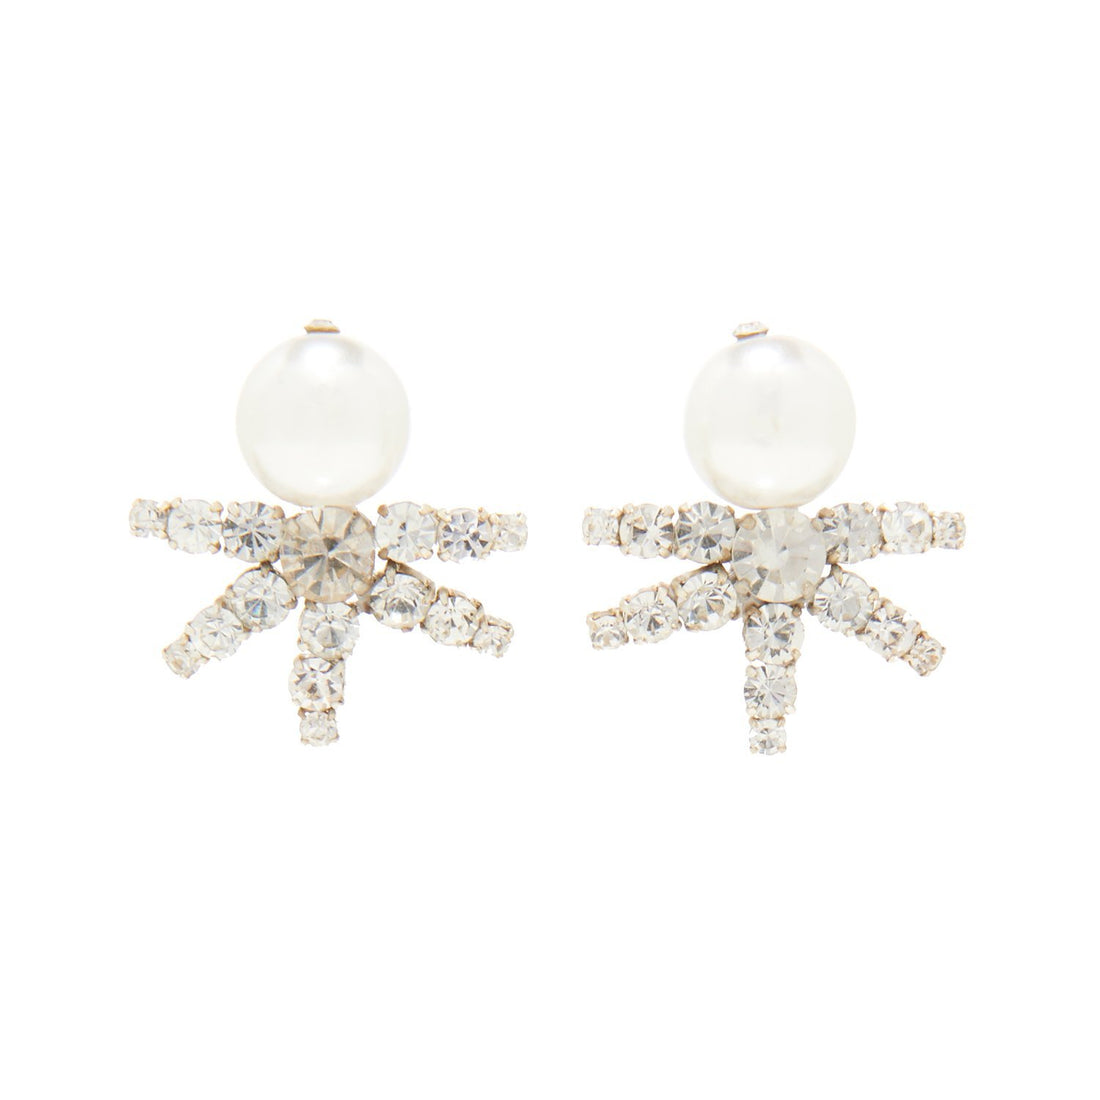 MIGNONNE GAVIGAN LILA PEARL EARRINGS